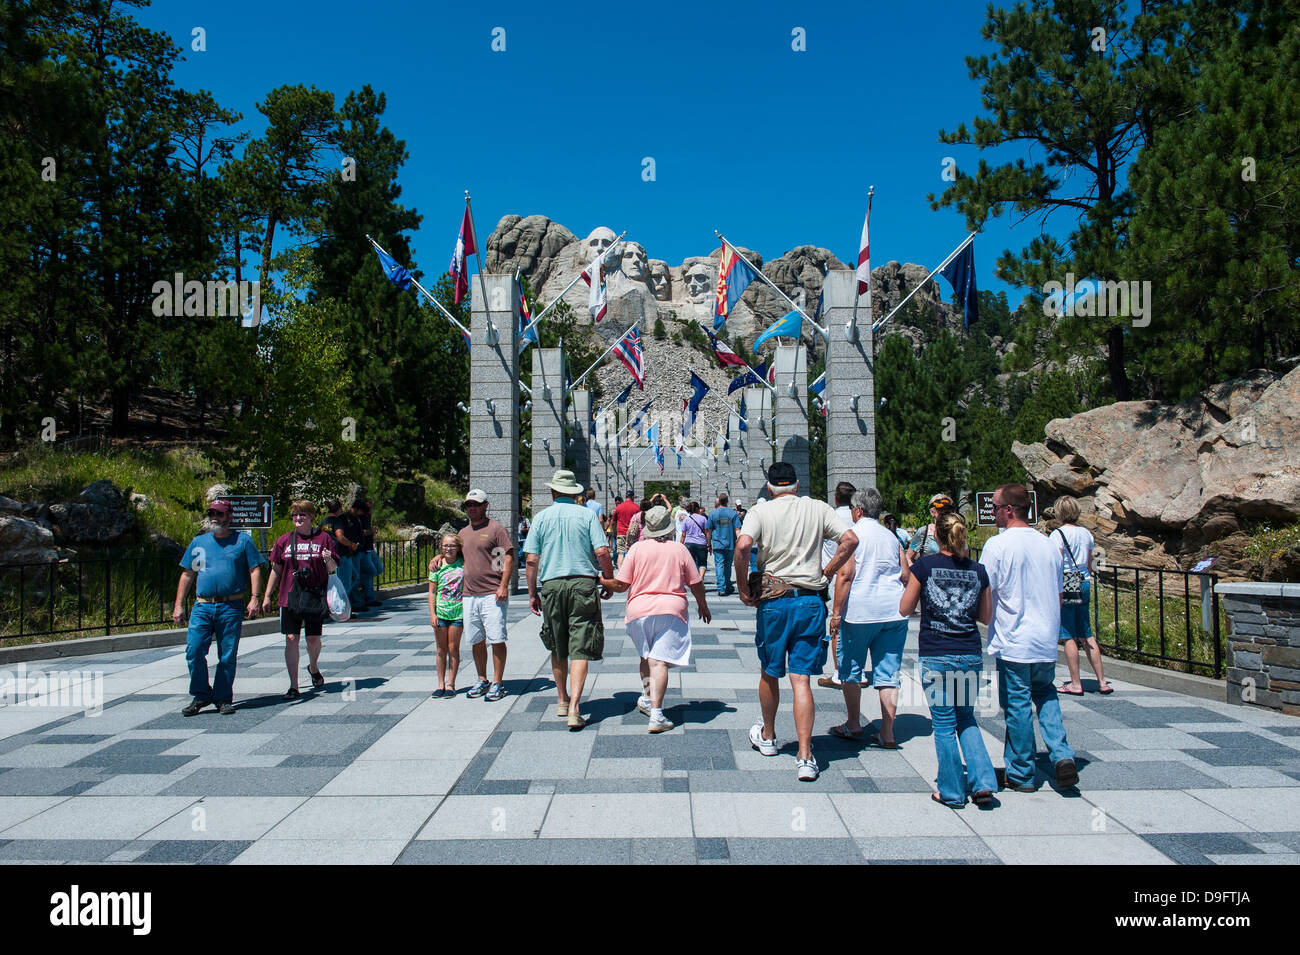 Tourists on their way to Mount Rushmore, South Dakota, USA - Stock Image